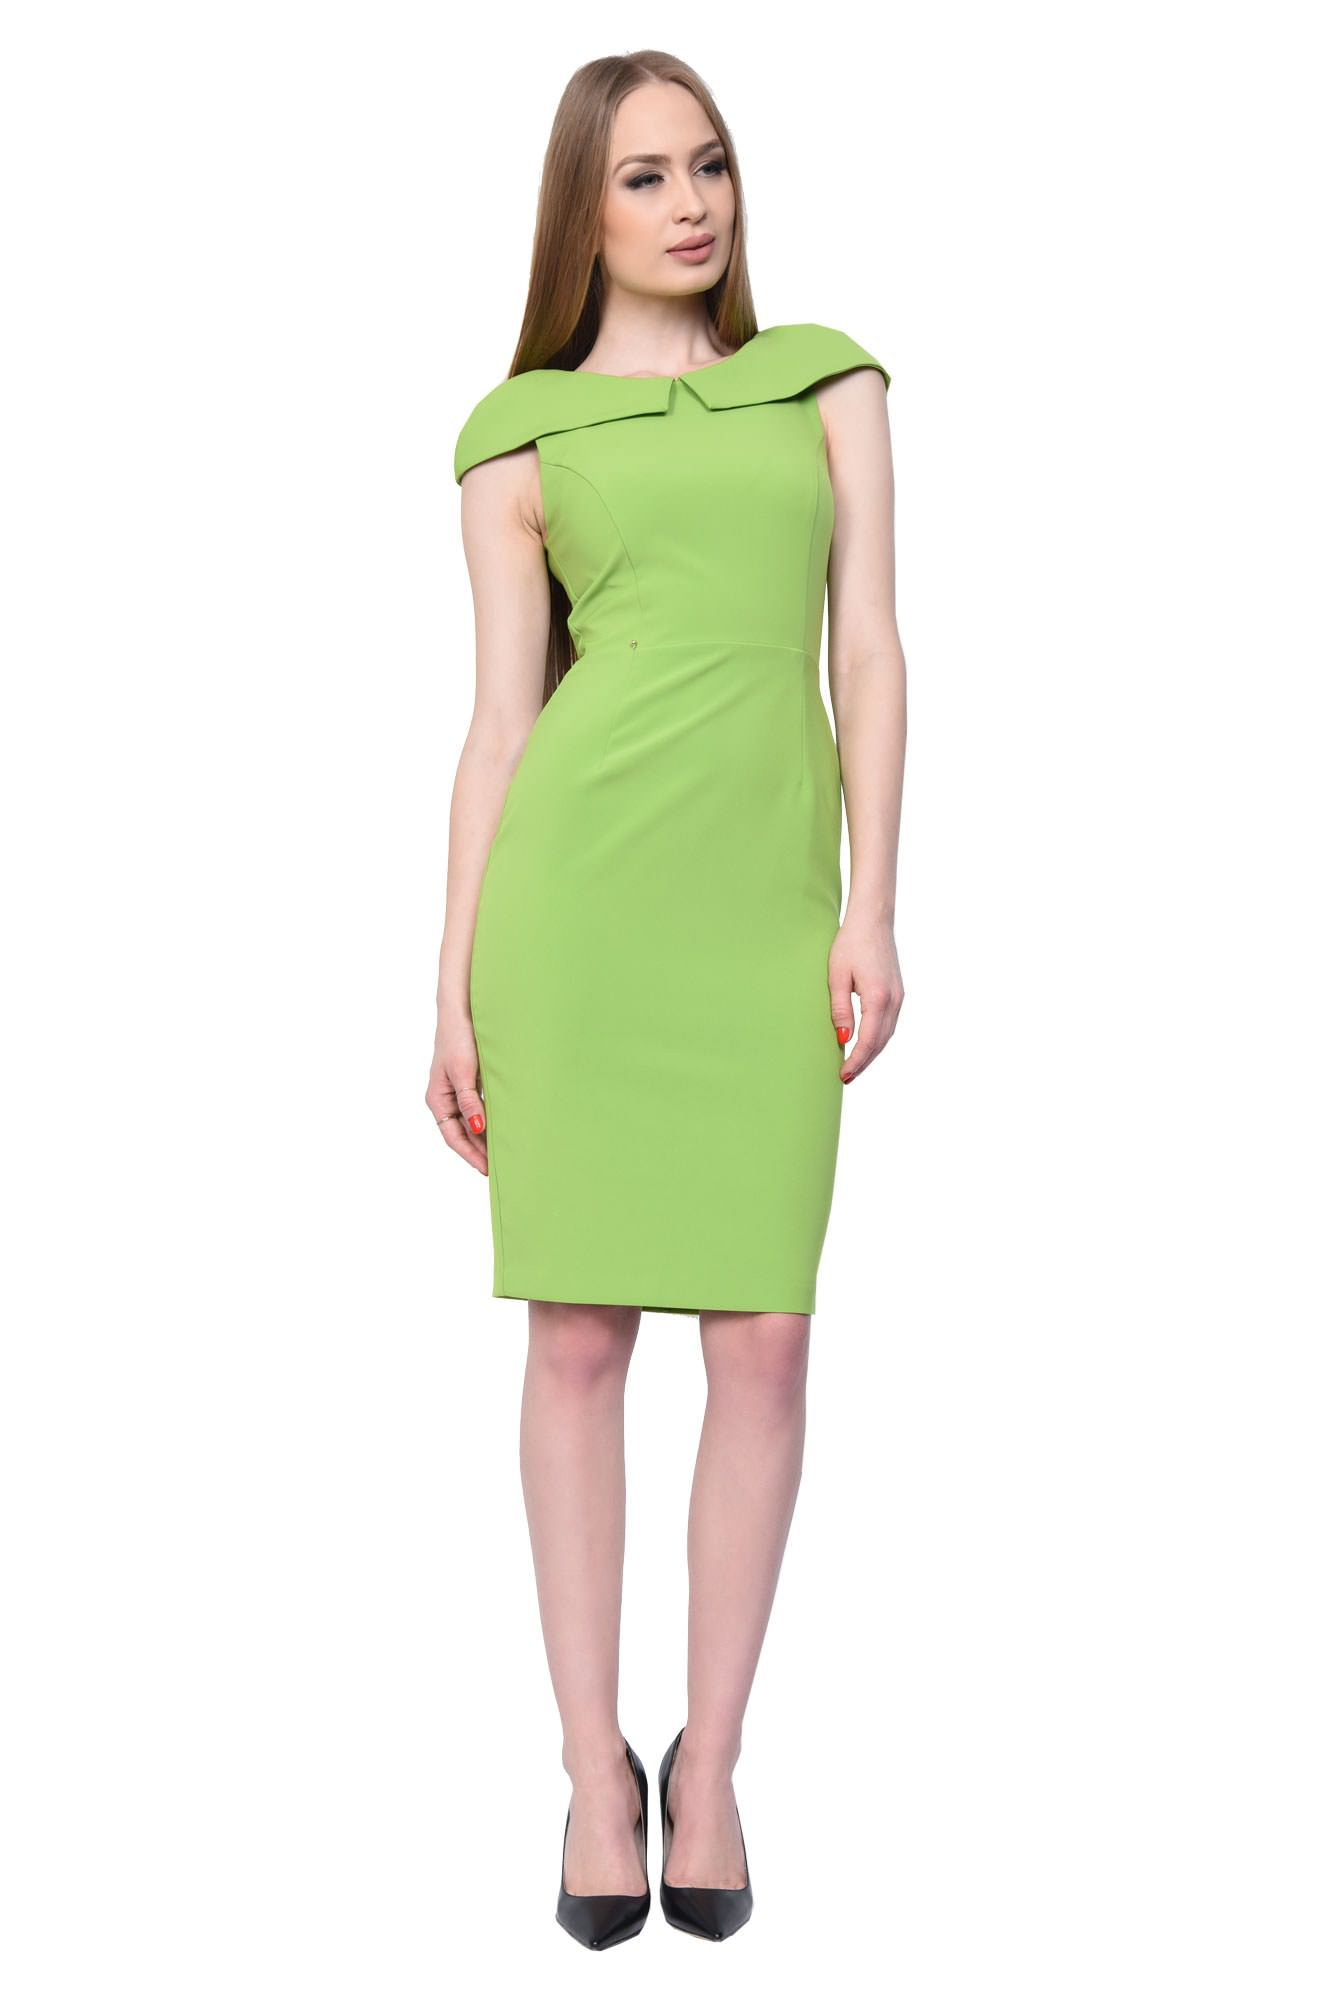 ROCHIE OFFICE CONICA R 262-VERDE